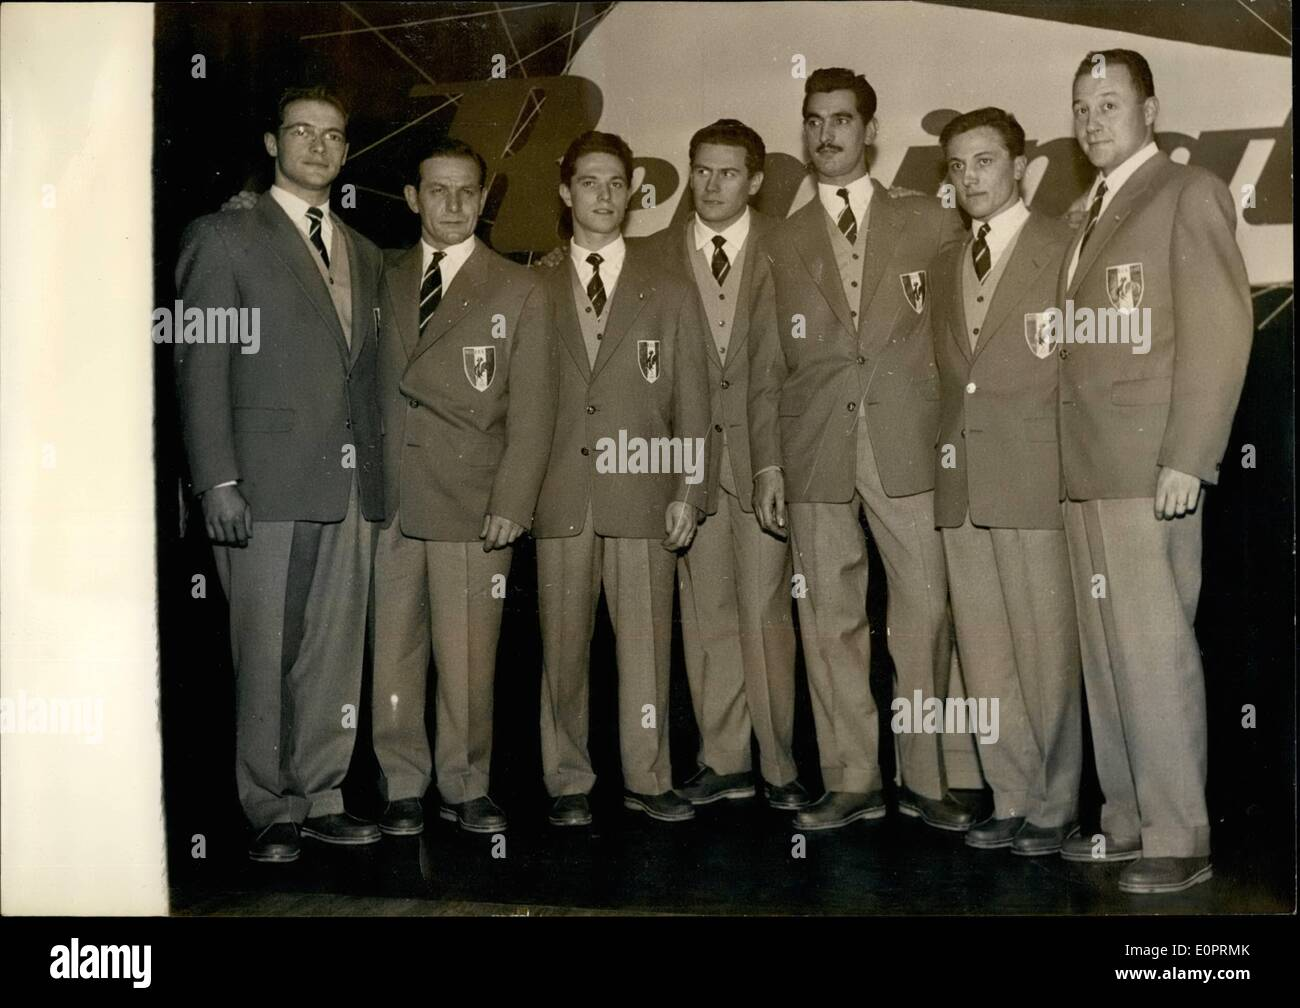 Nov. 11, 1956 - French fencing team for Melbourne Olympics Games: From left to right: Gavot, Nigron, Closset, Coicaud, Mouyal, Roulot and Netter. - Stock Image